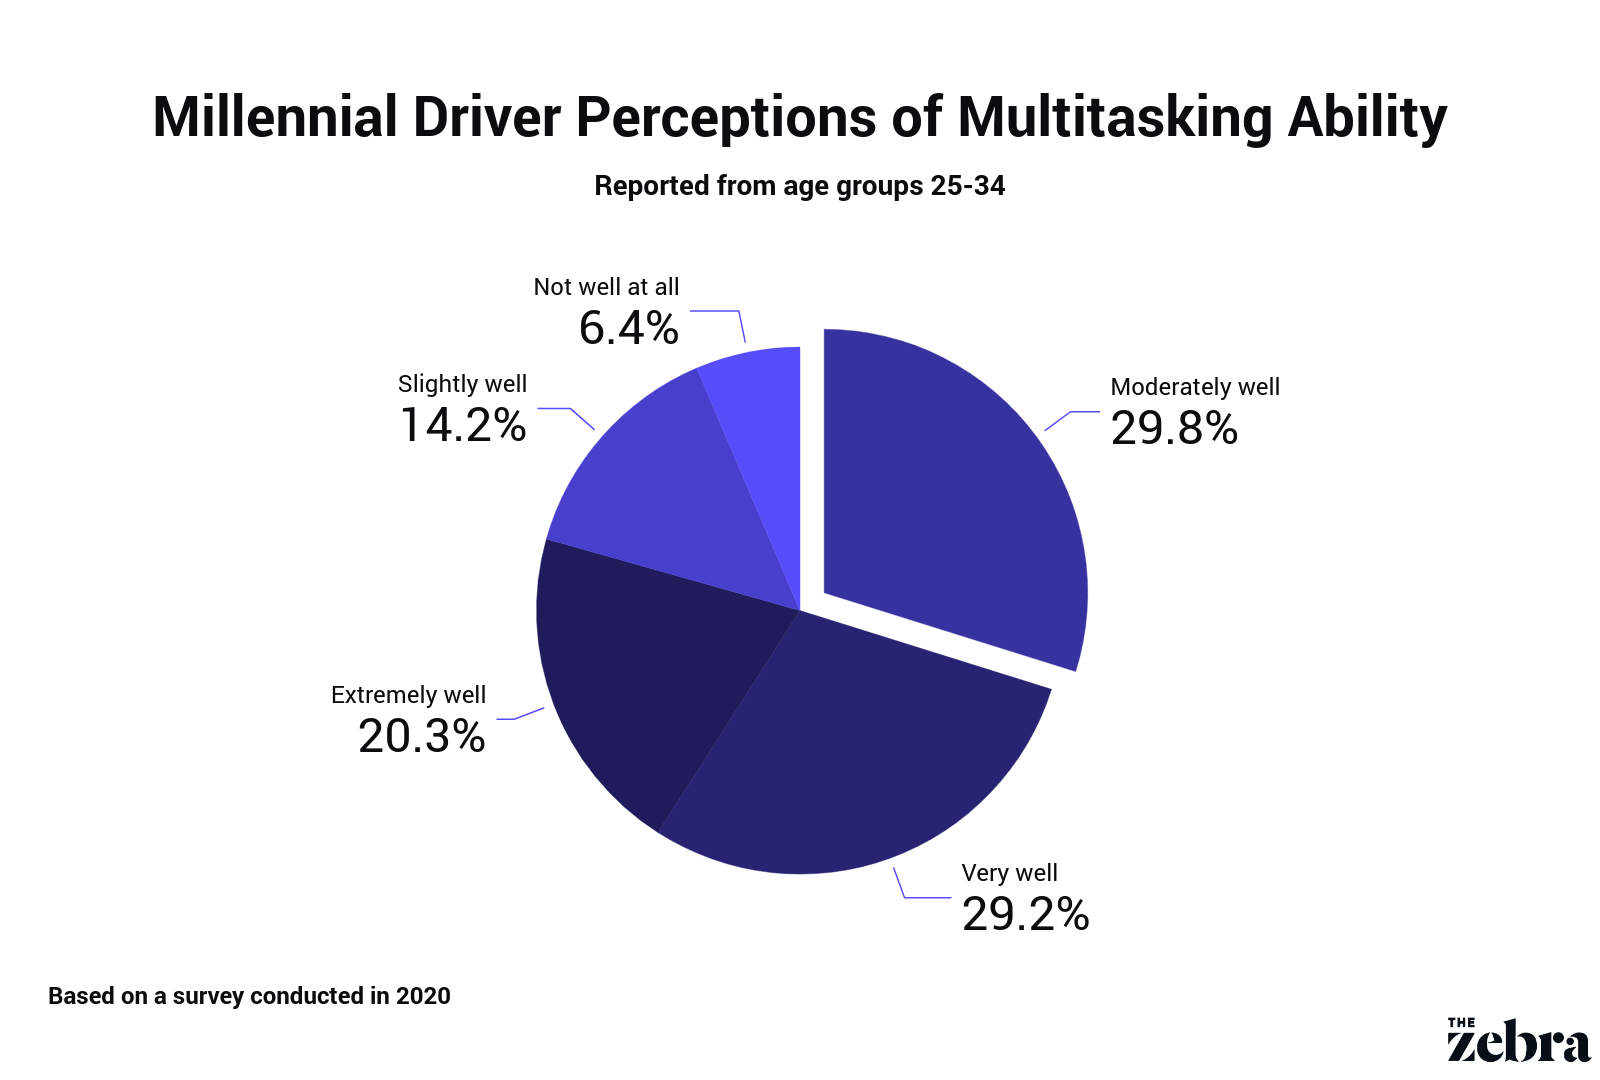 pie chart displaying millennial driver perceived multitasking ability